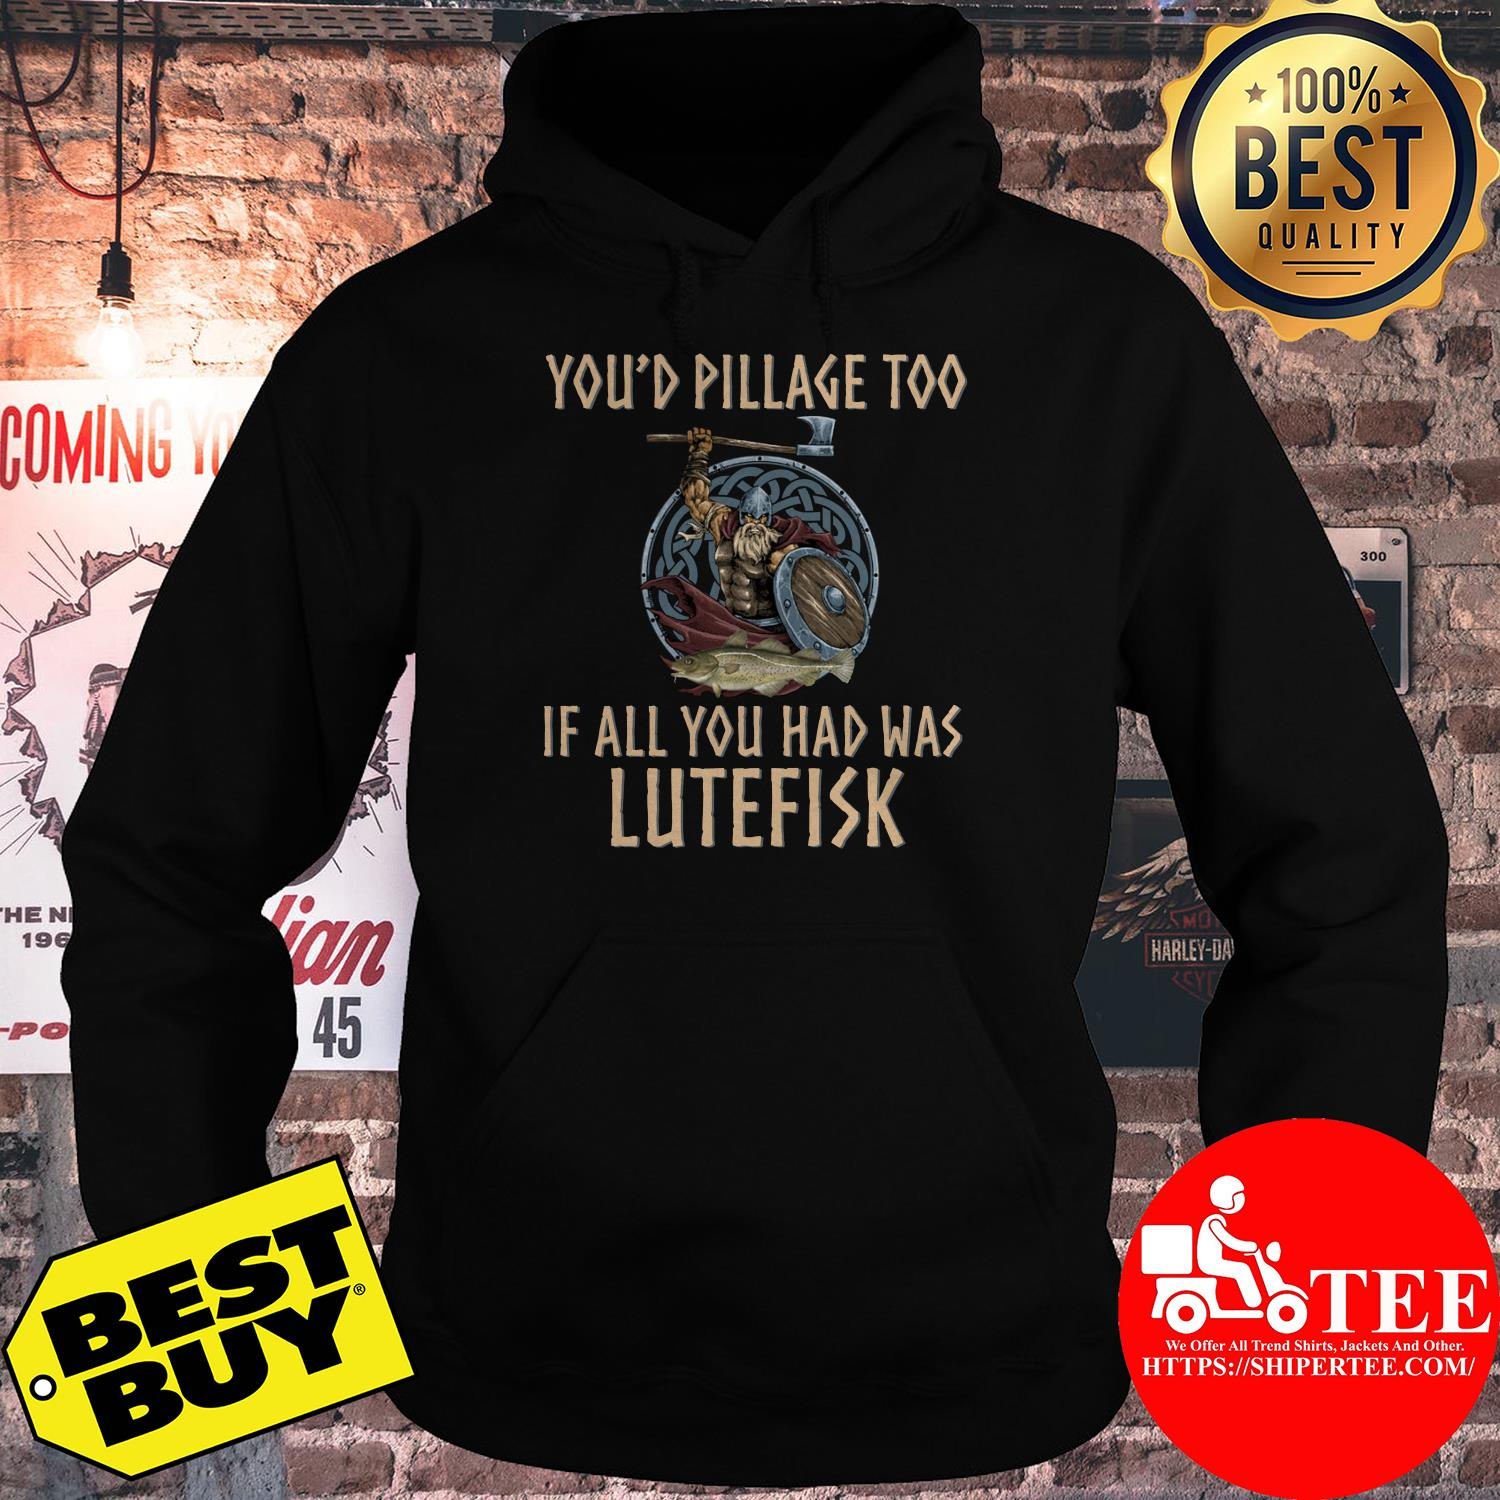 You'd pillage too If all you had was Lutefisk hoodie